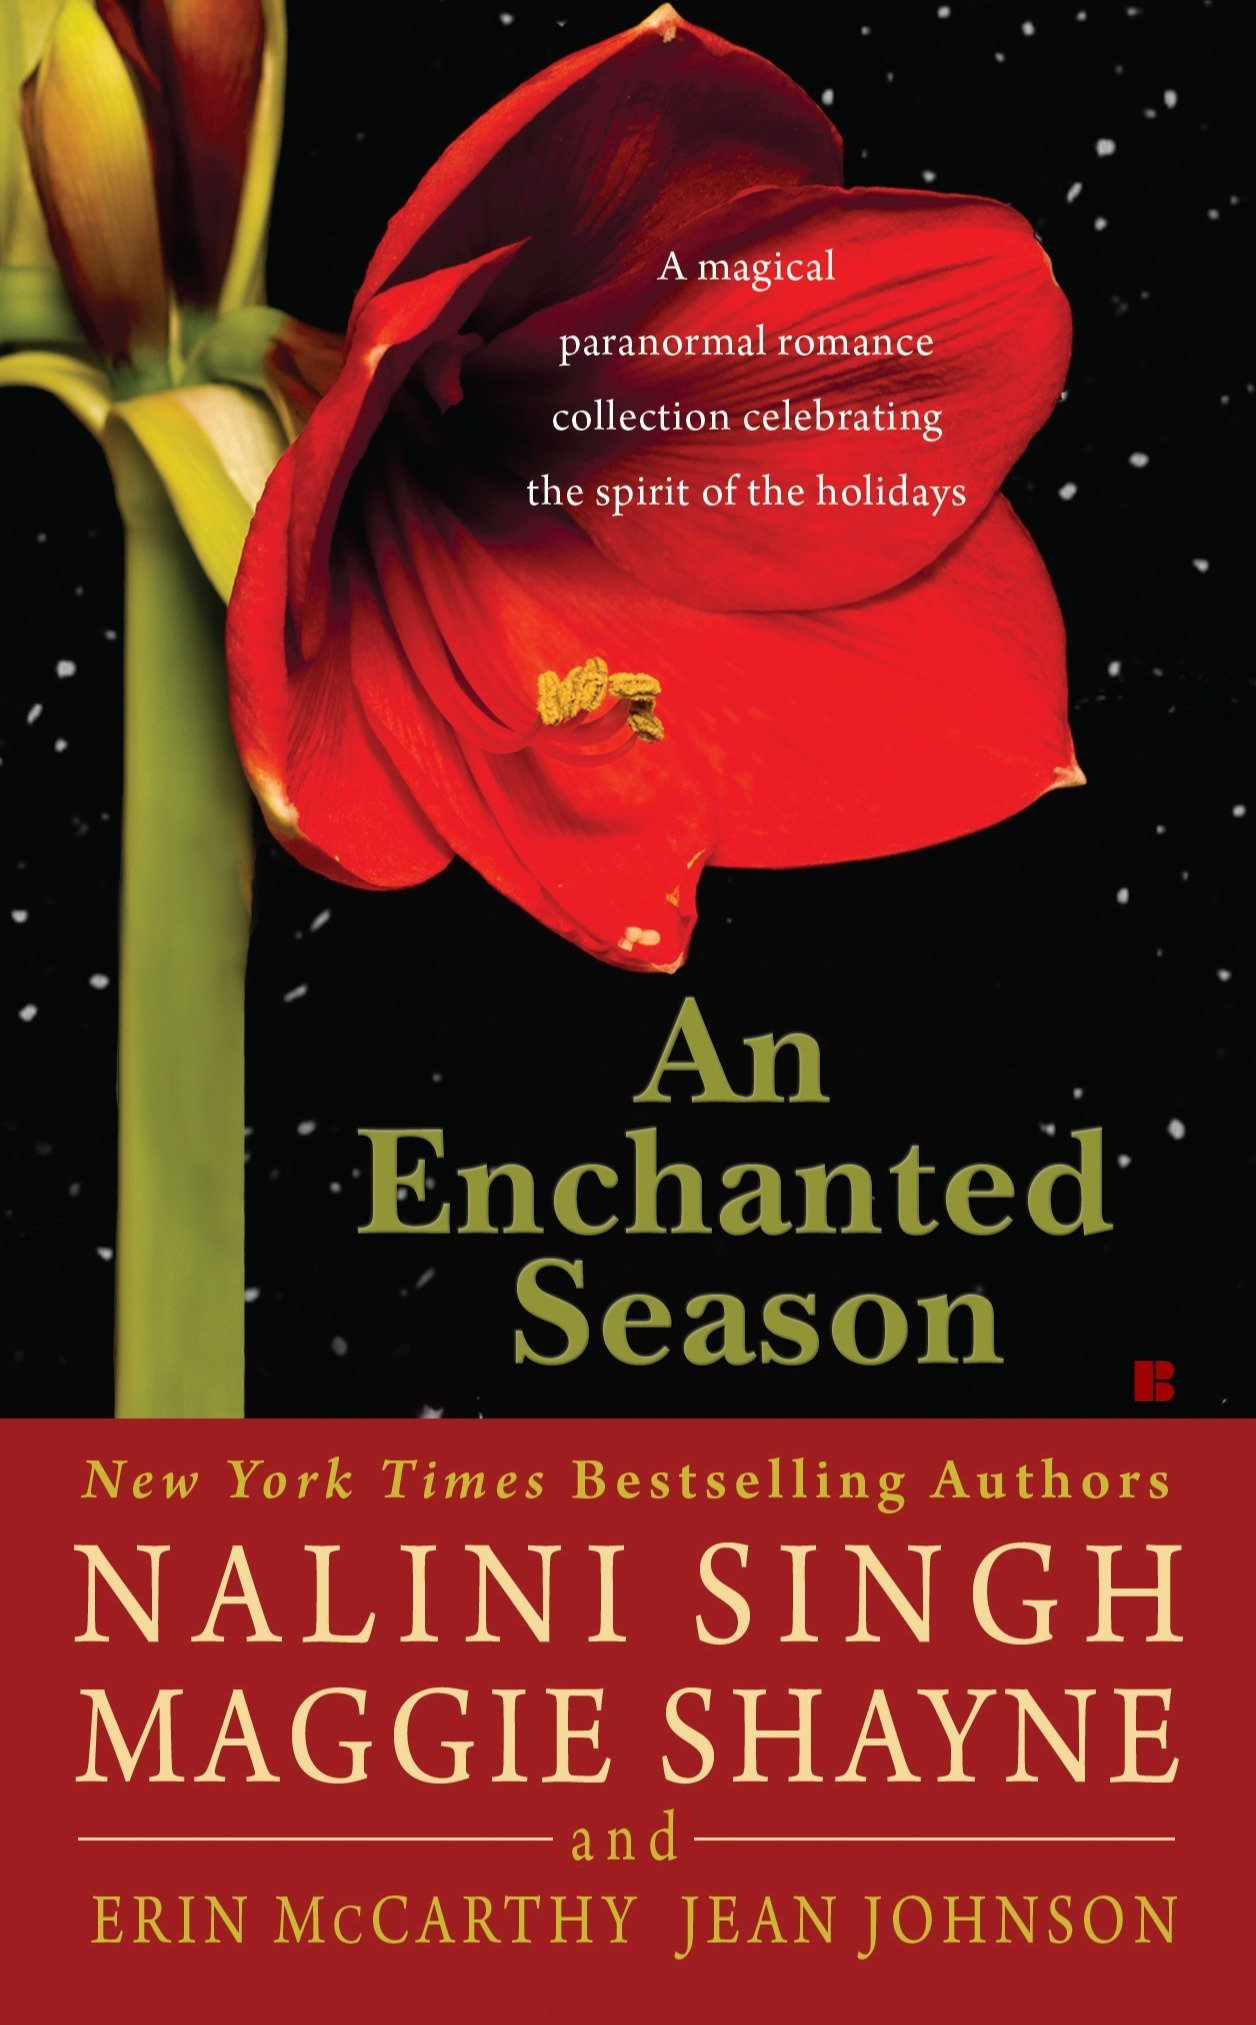 Image result for an enchanted season book cover